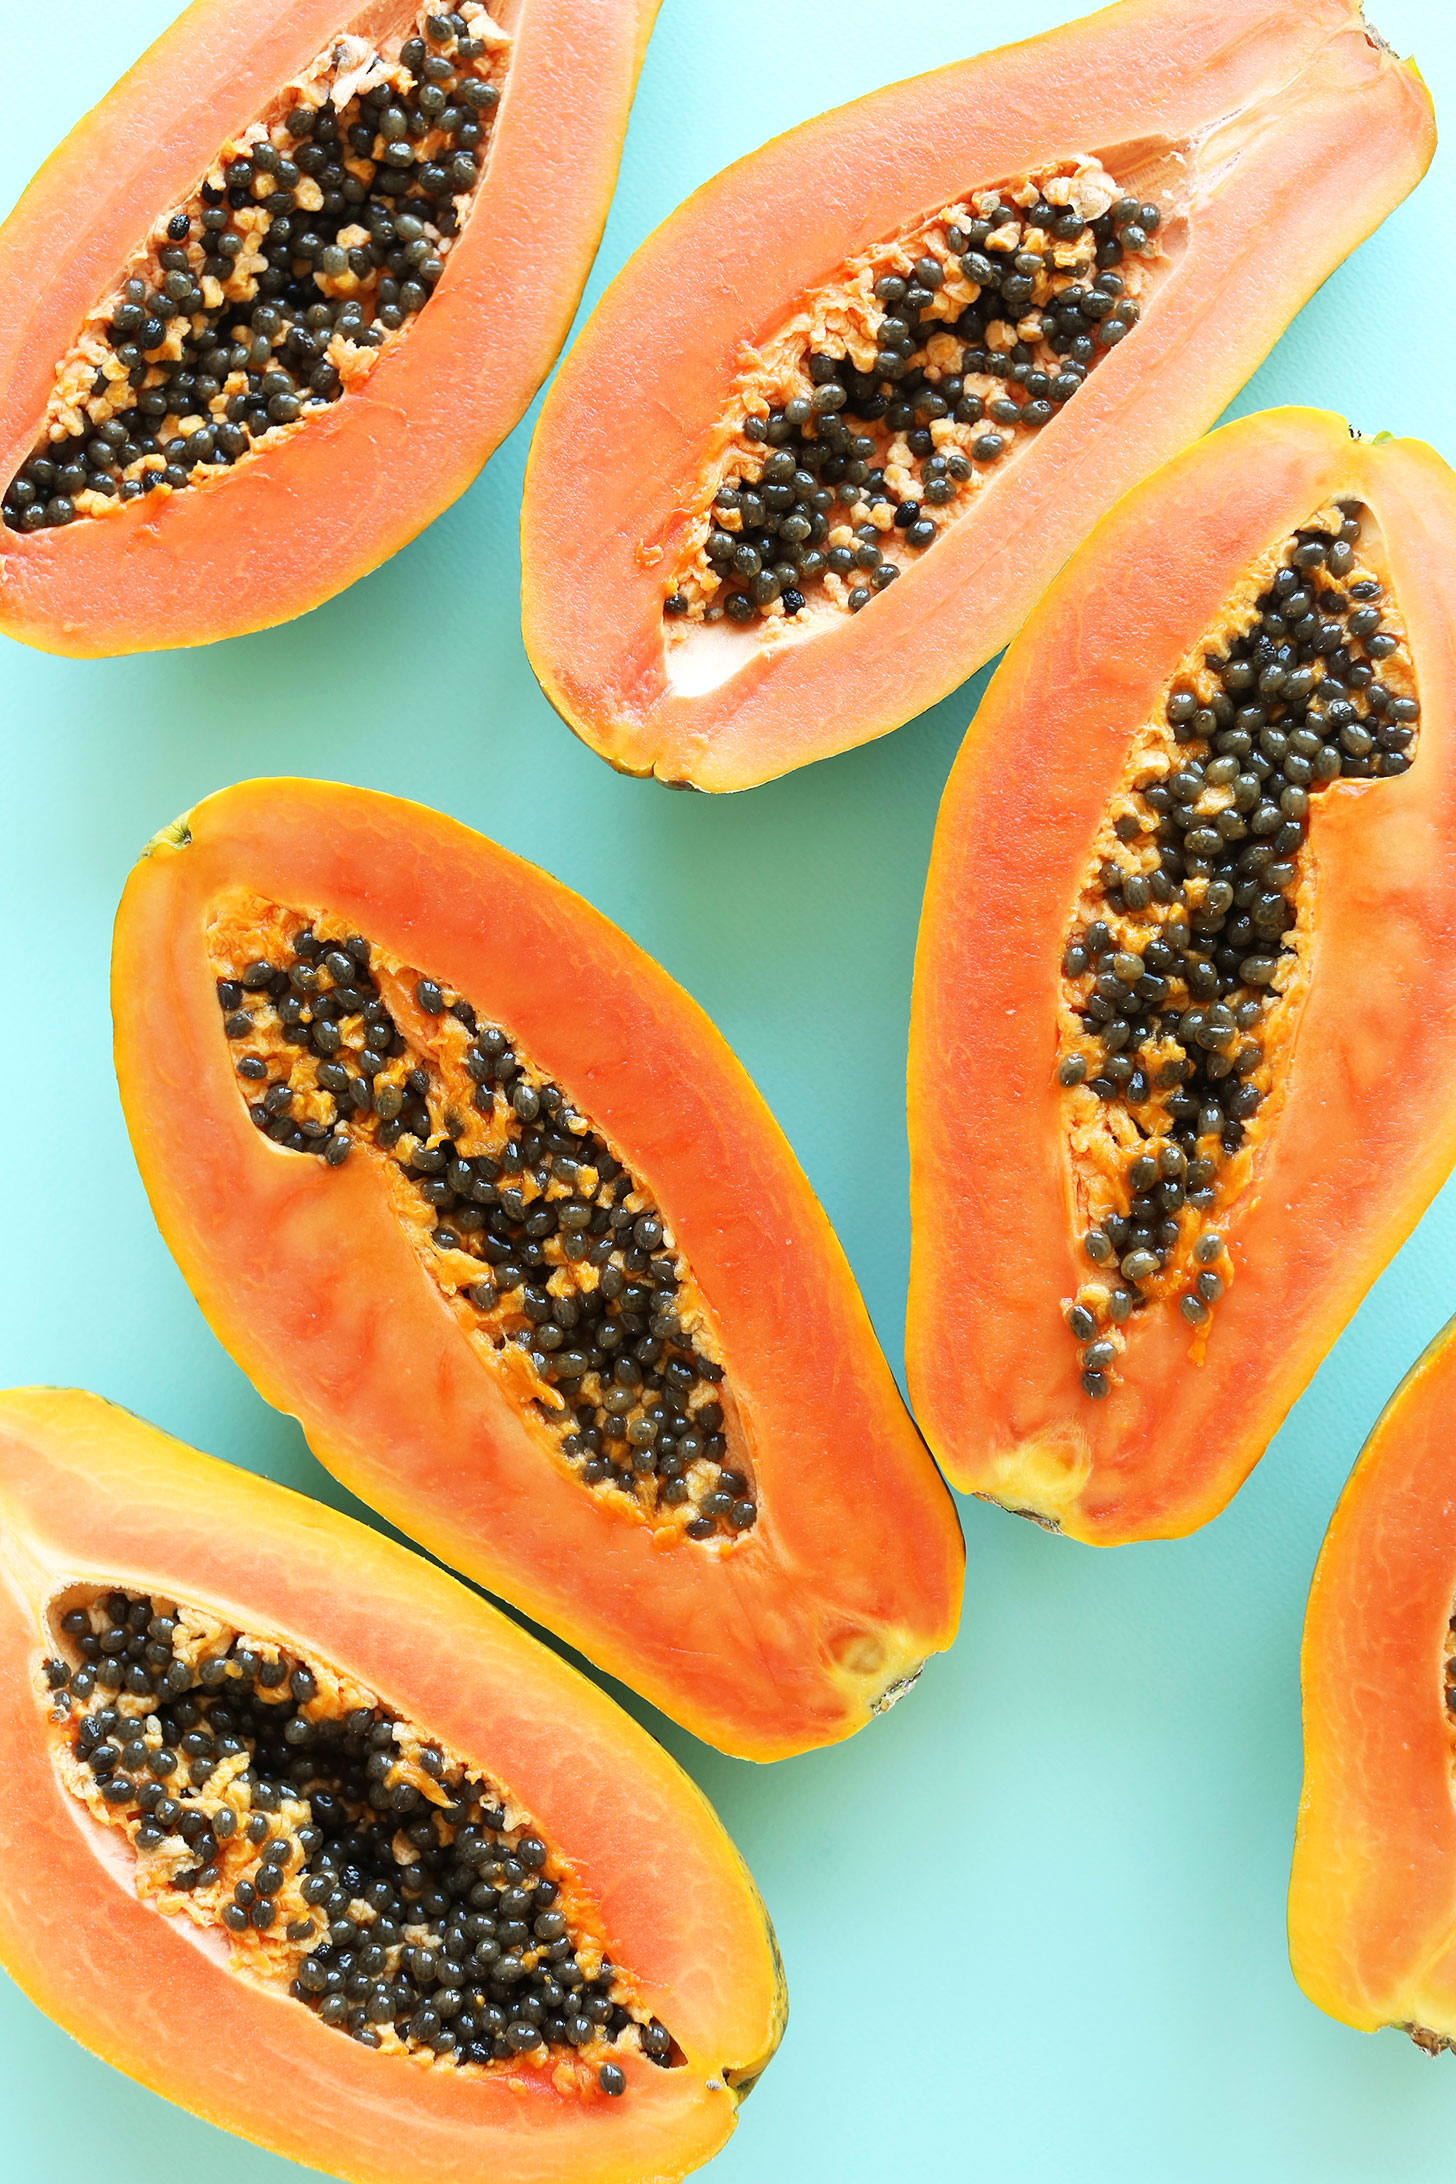 Papaya Images Fruit